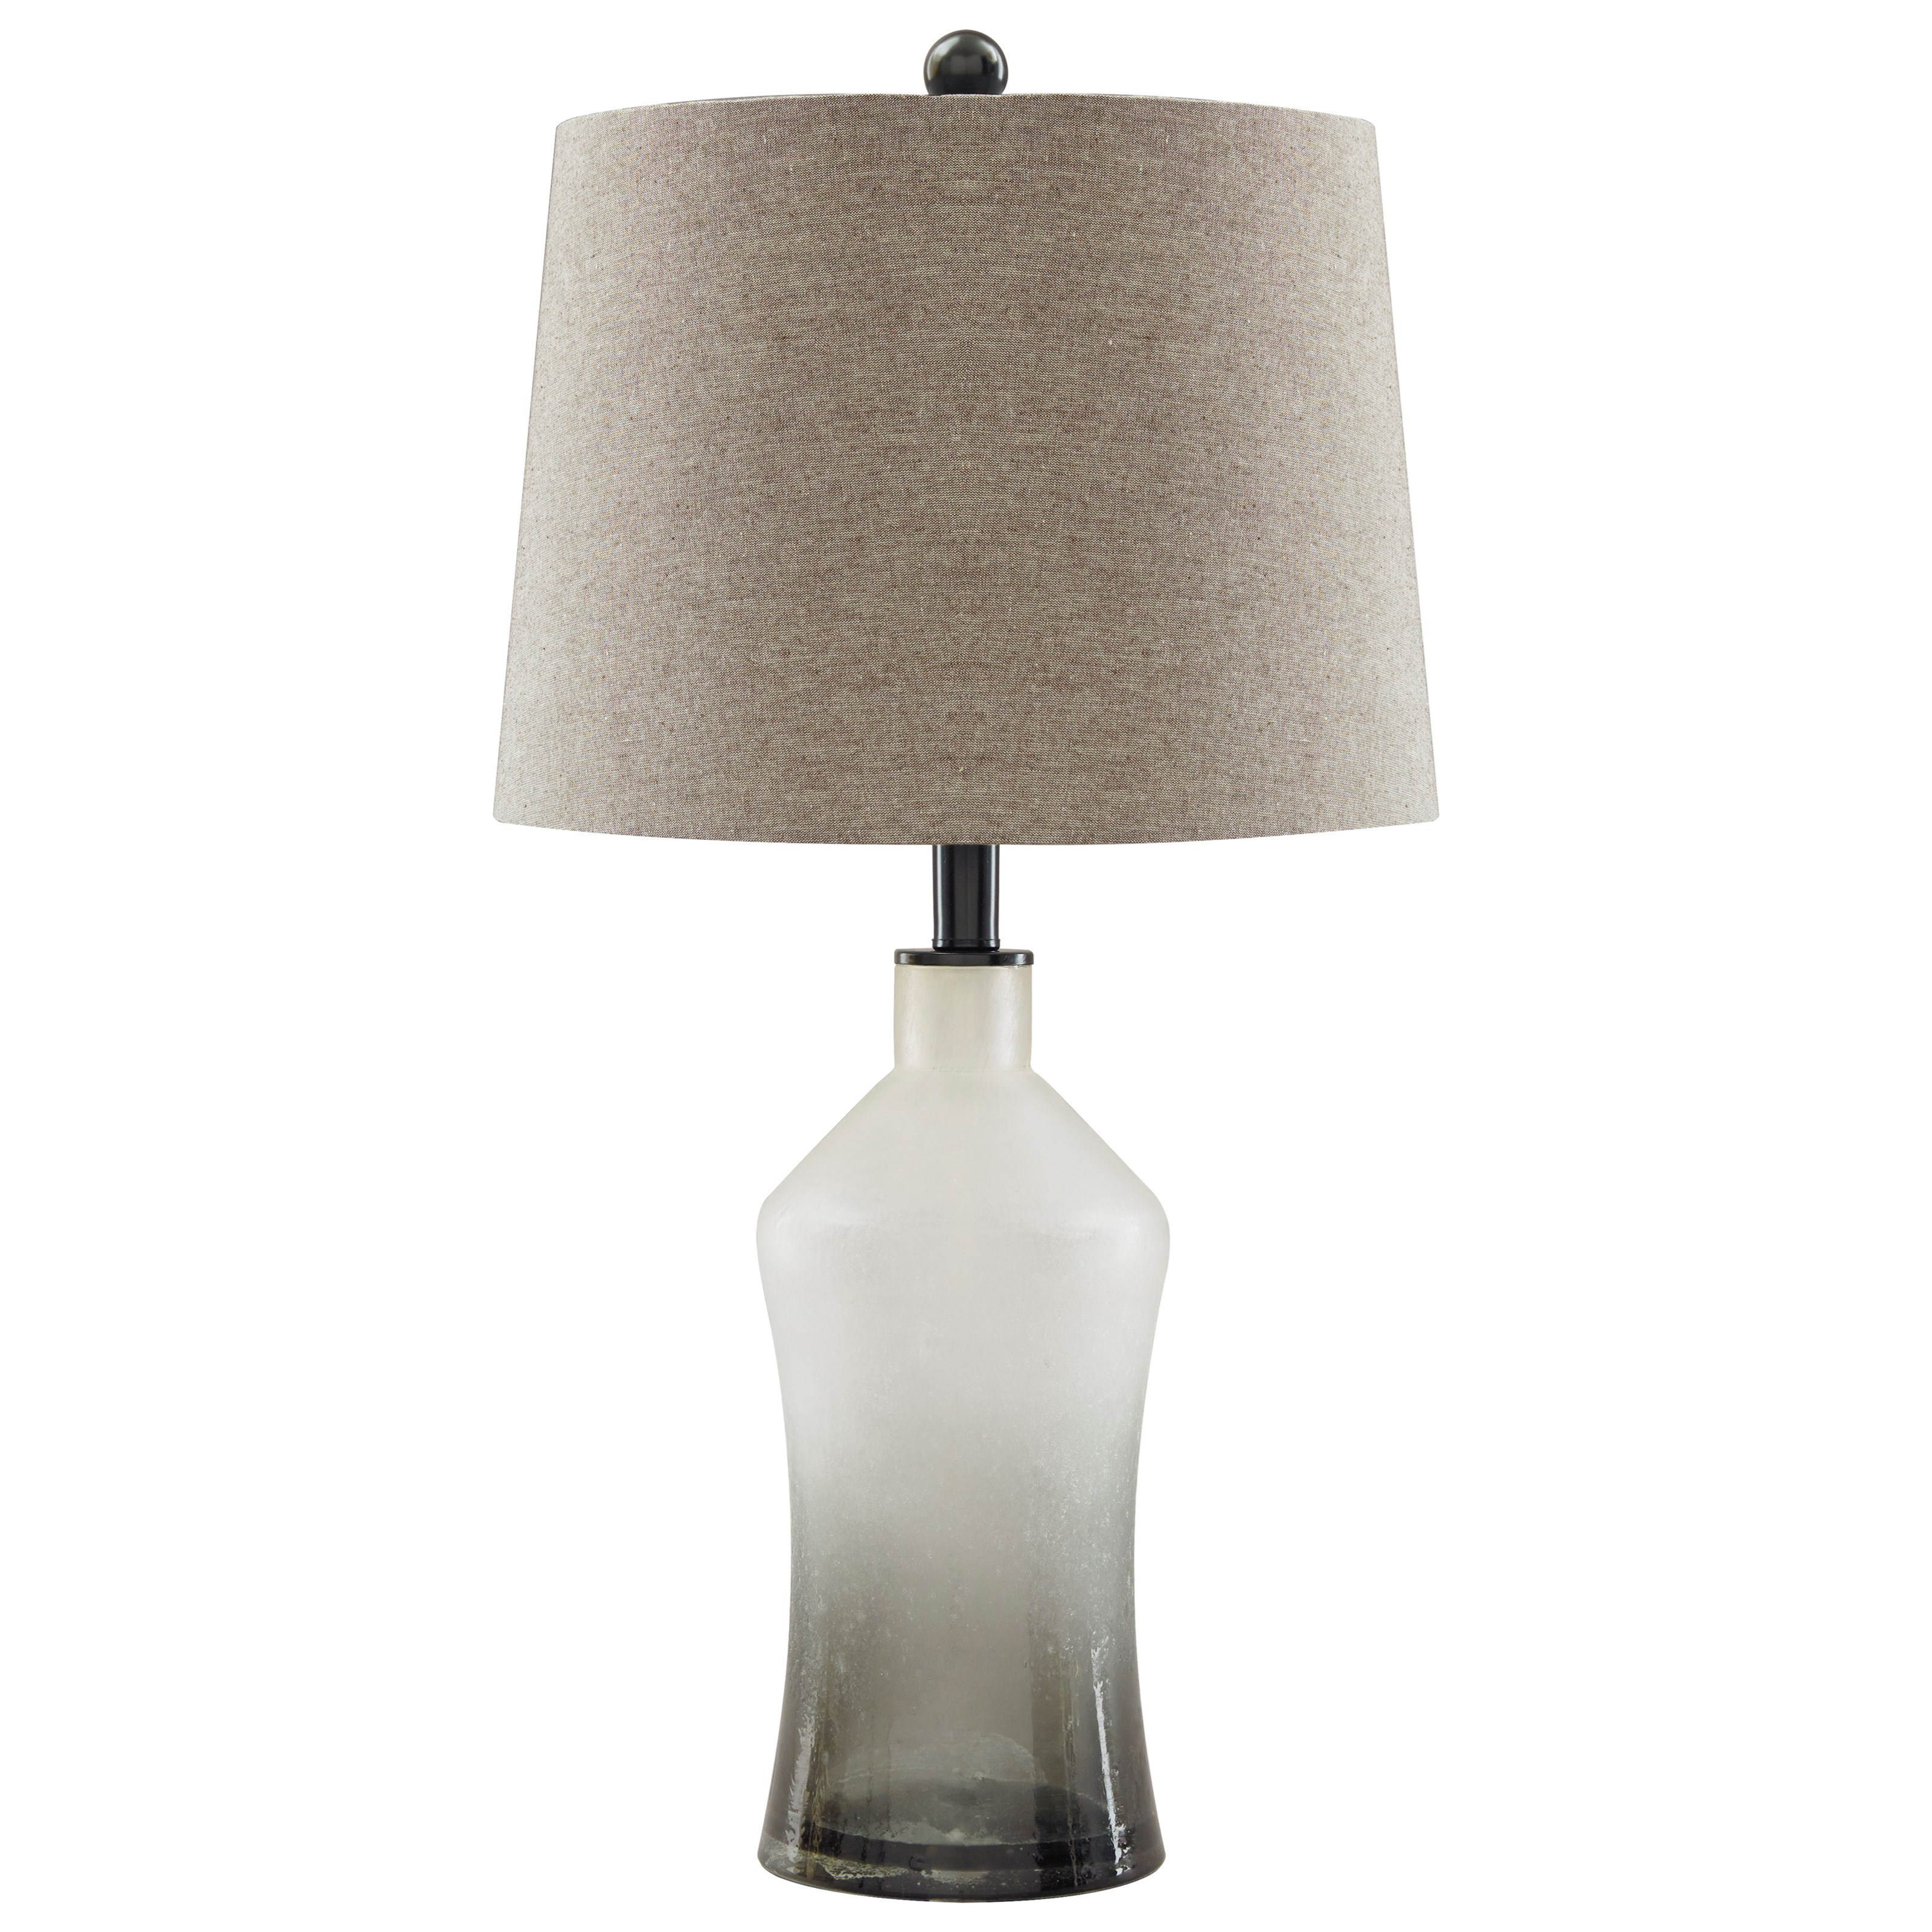 Signature Design By Ashley Lamps   Vintage Style Set Of 2 Nollie Gray Glass Table  Lamps